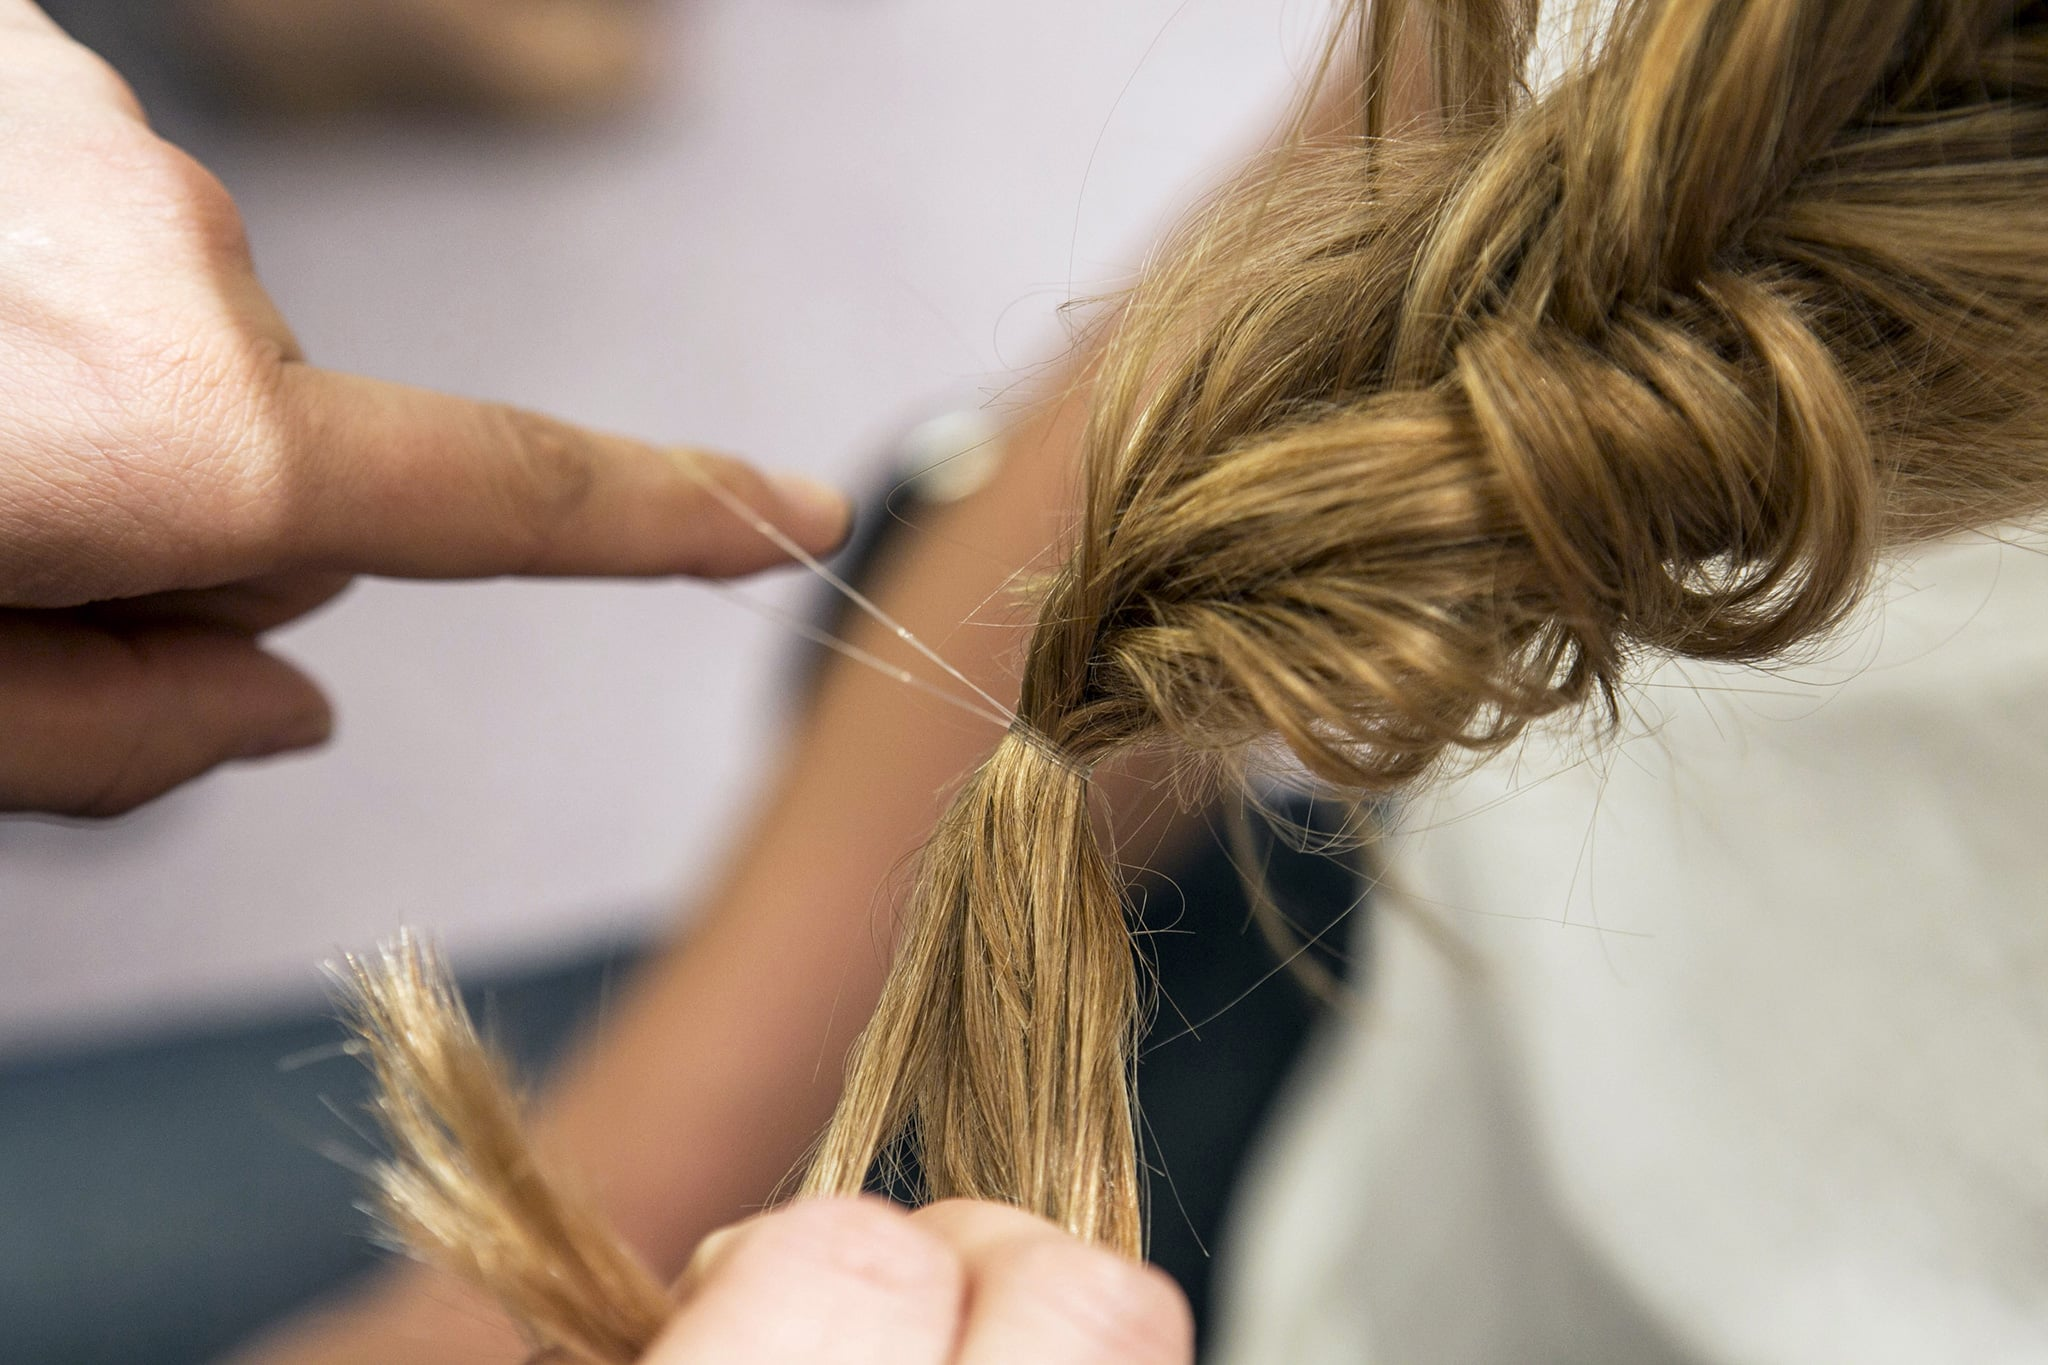 Go back and secure the ends with a thin elastic.